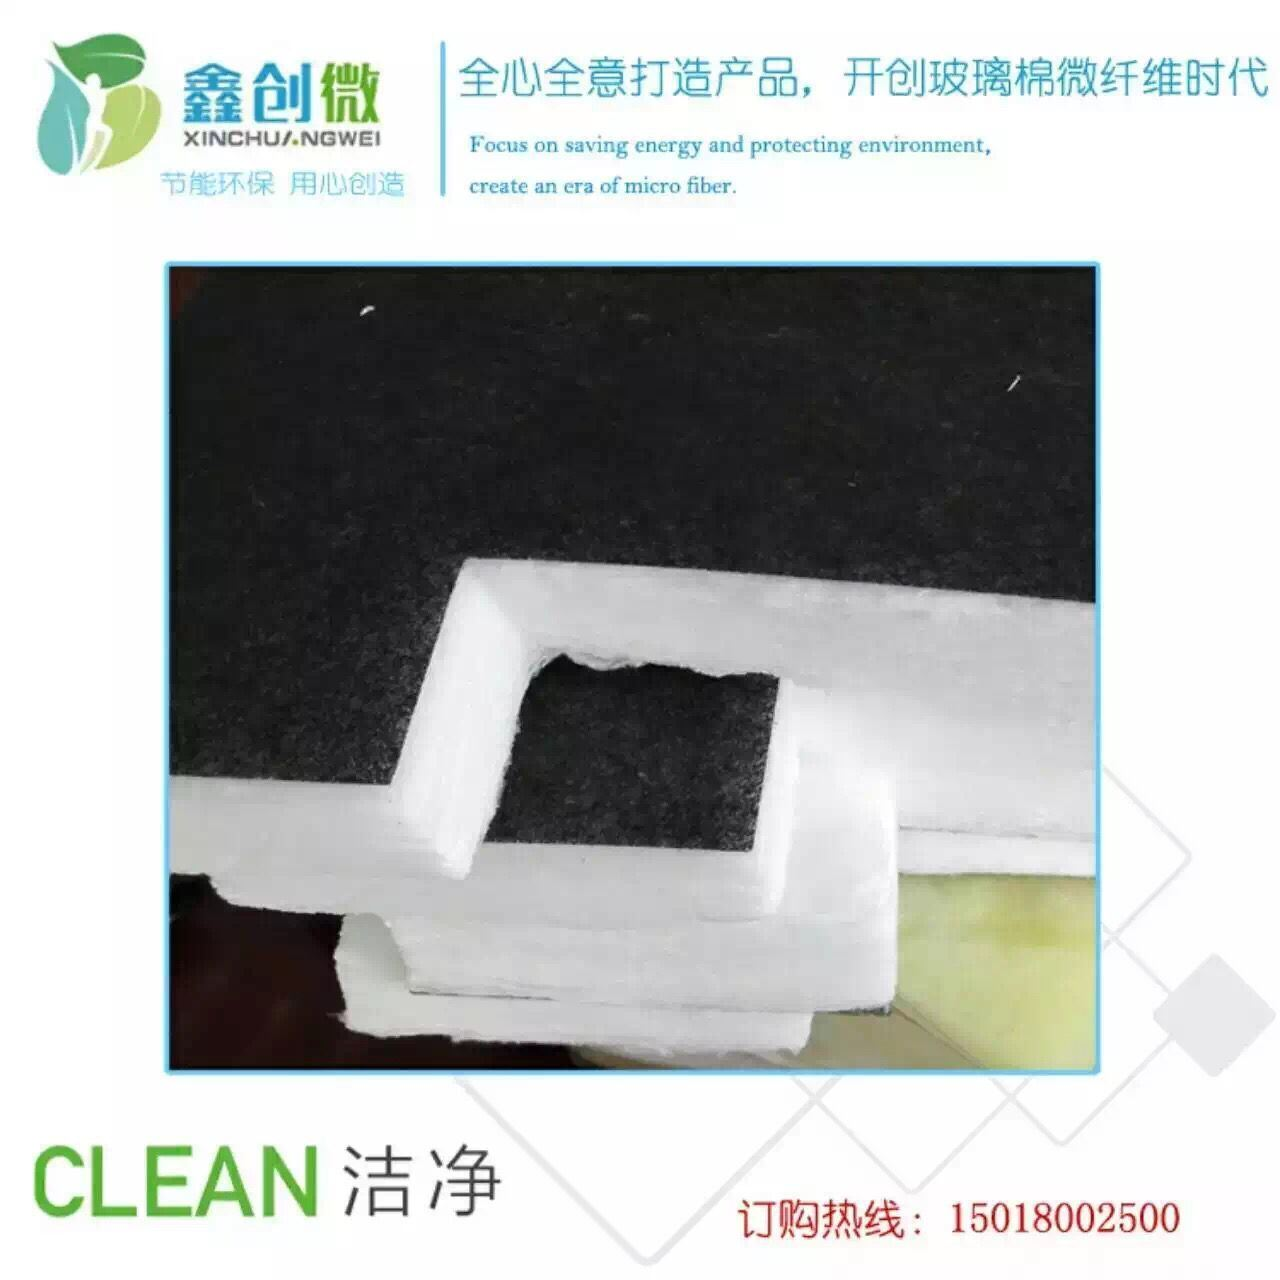 Customized Oven Heat Insulation Glassfiber Mat for Electric Appliance